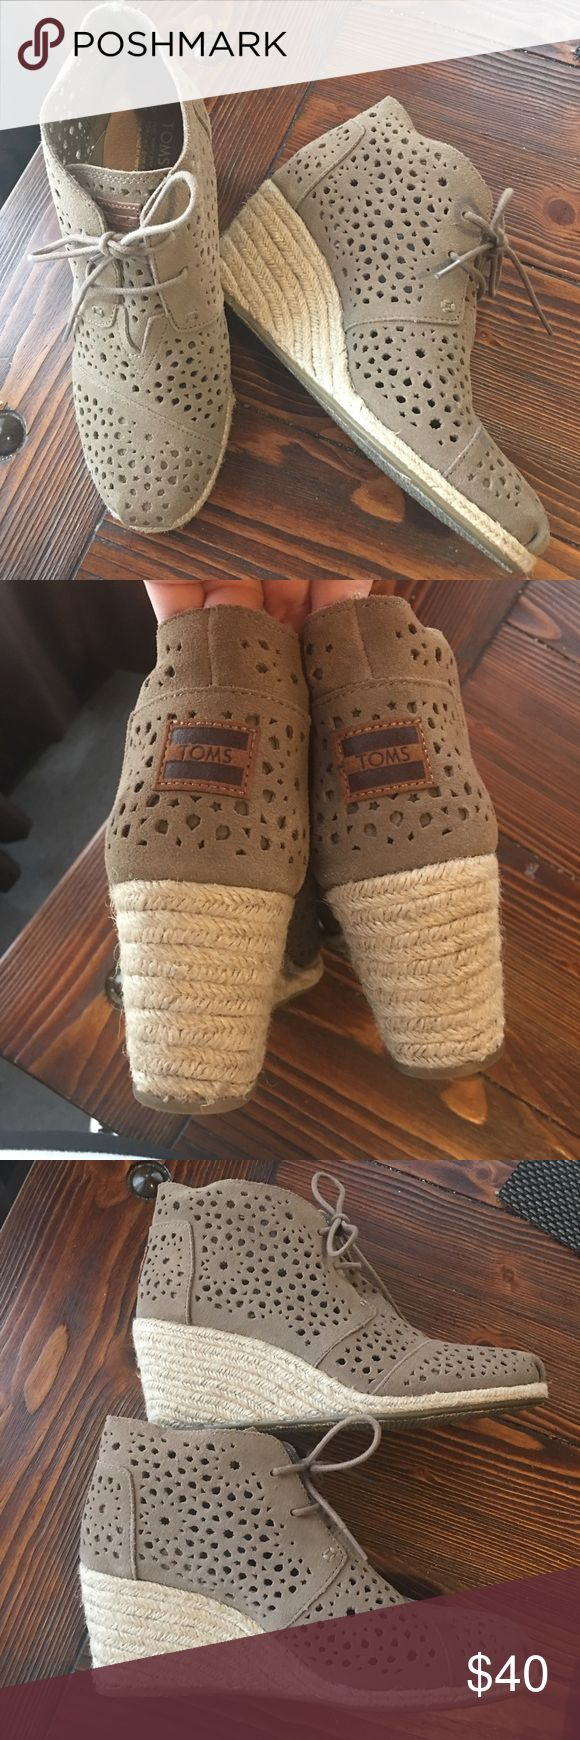 Toms Wedge booties size 8.5W Gorgeous booties. Wedge style, so you can feel comfortable all day. The inside has an elastic part so it will stretch with you. These were used only about 2-3 times. They are super cute! They have a small dot you can see on the fourth picture, but nothing major. 💙 Toms Shoes Ankle Boots & Booties